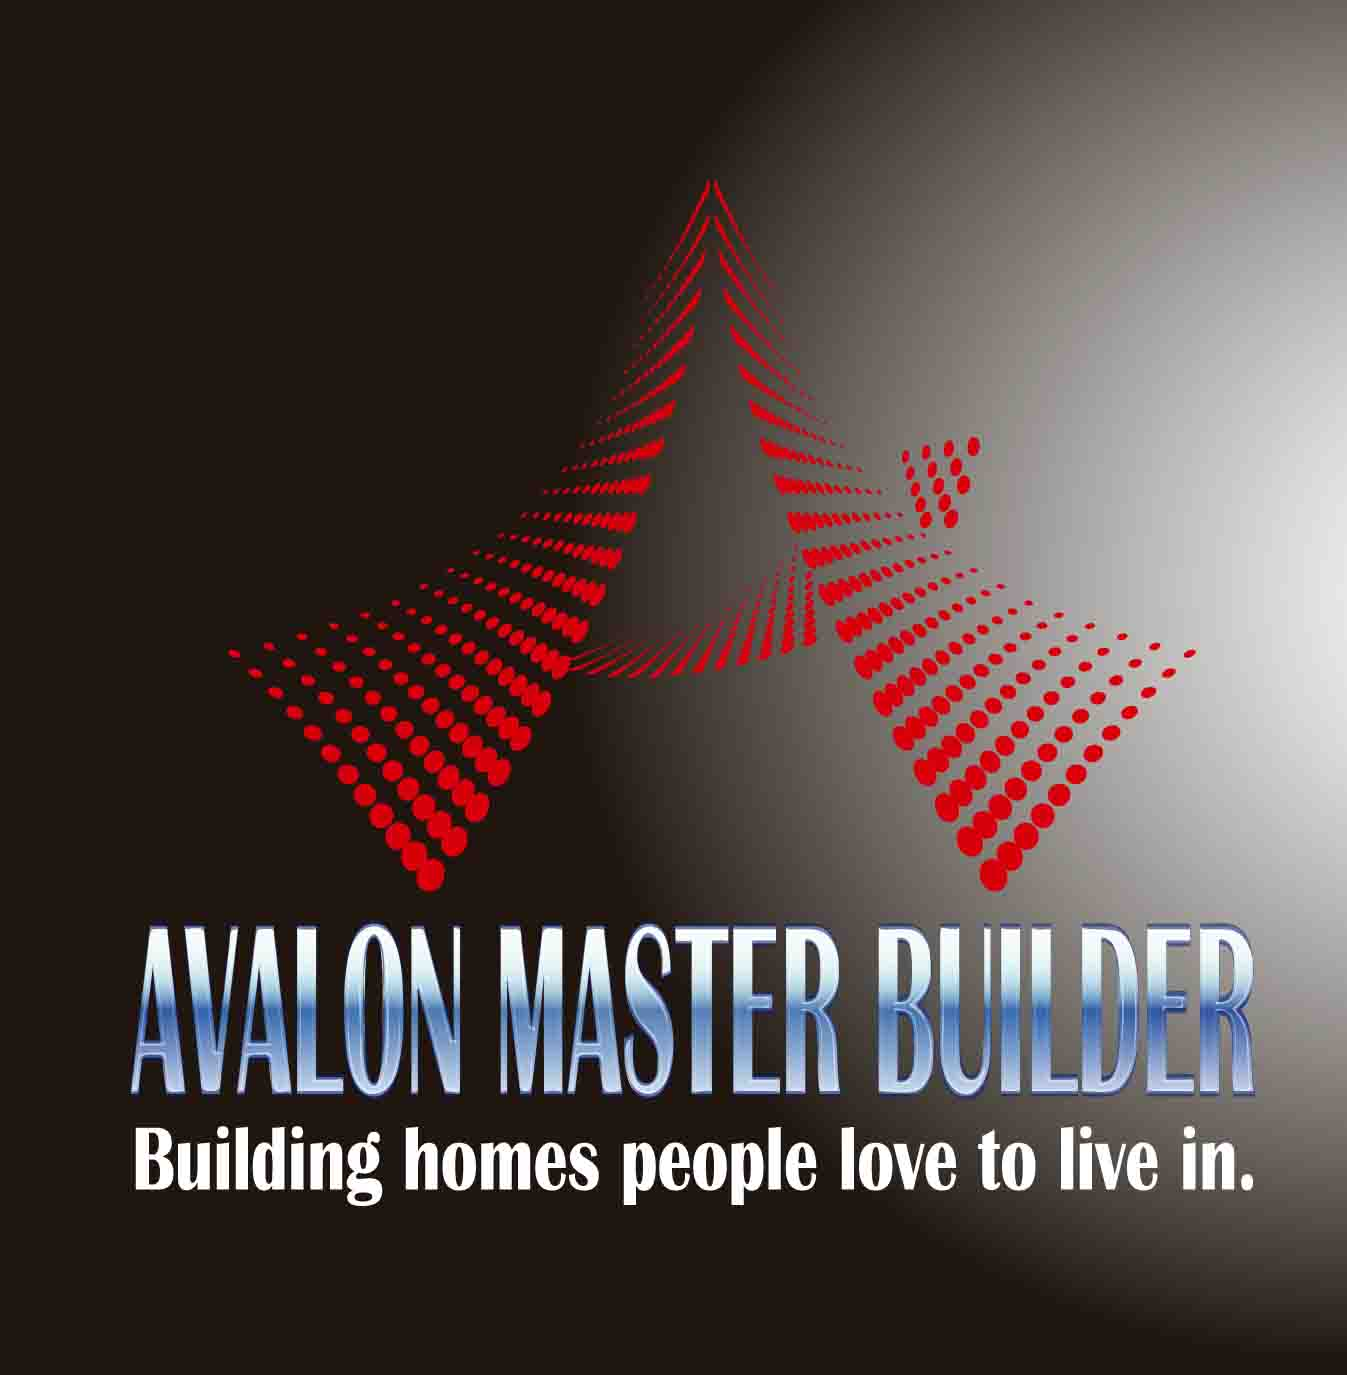 Logo Design by Aj Ong - Entry No. 7 in the Logo Design Contest Avalon Master Builder Logo Design.